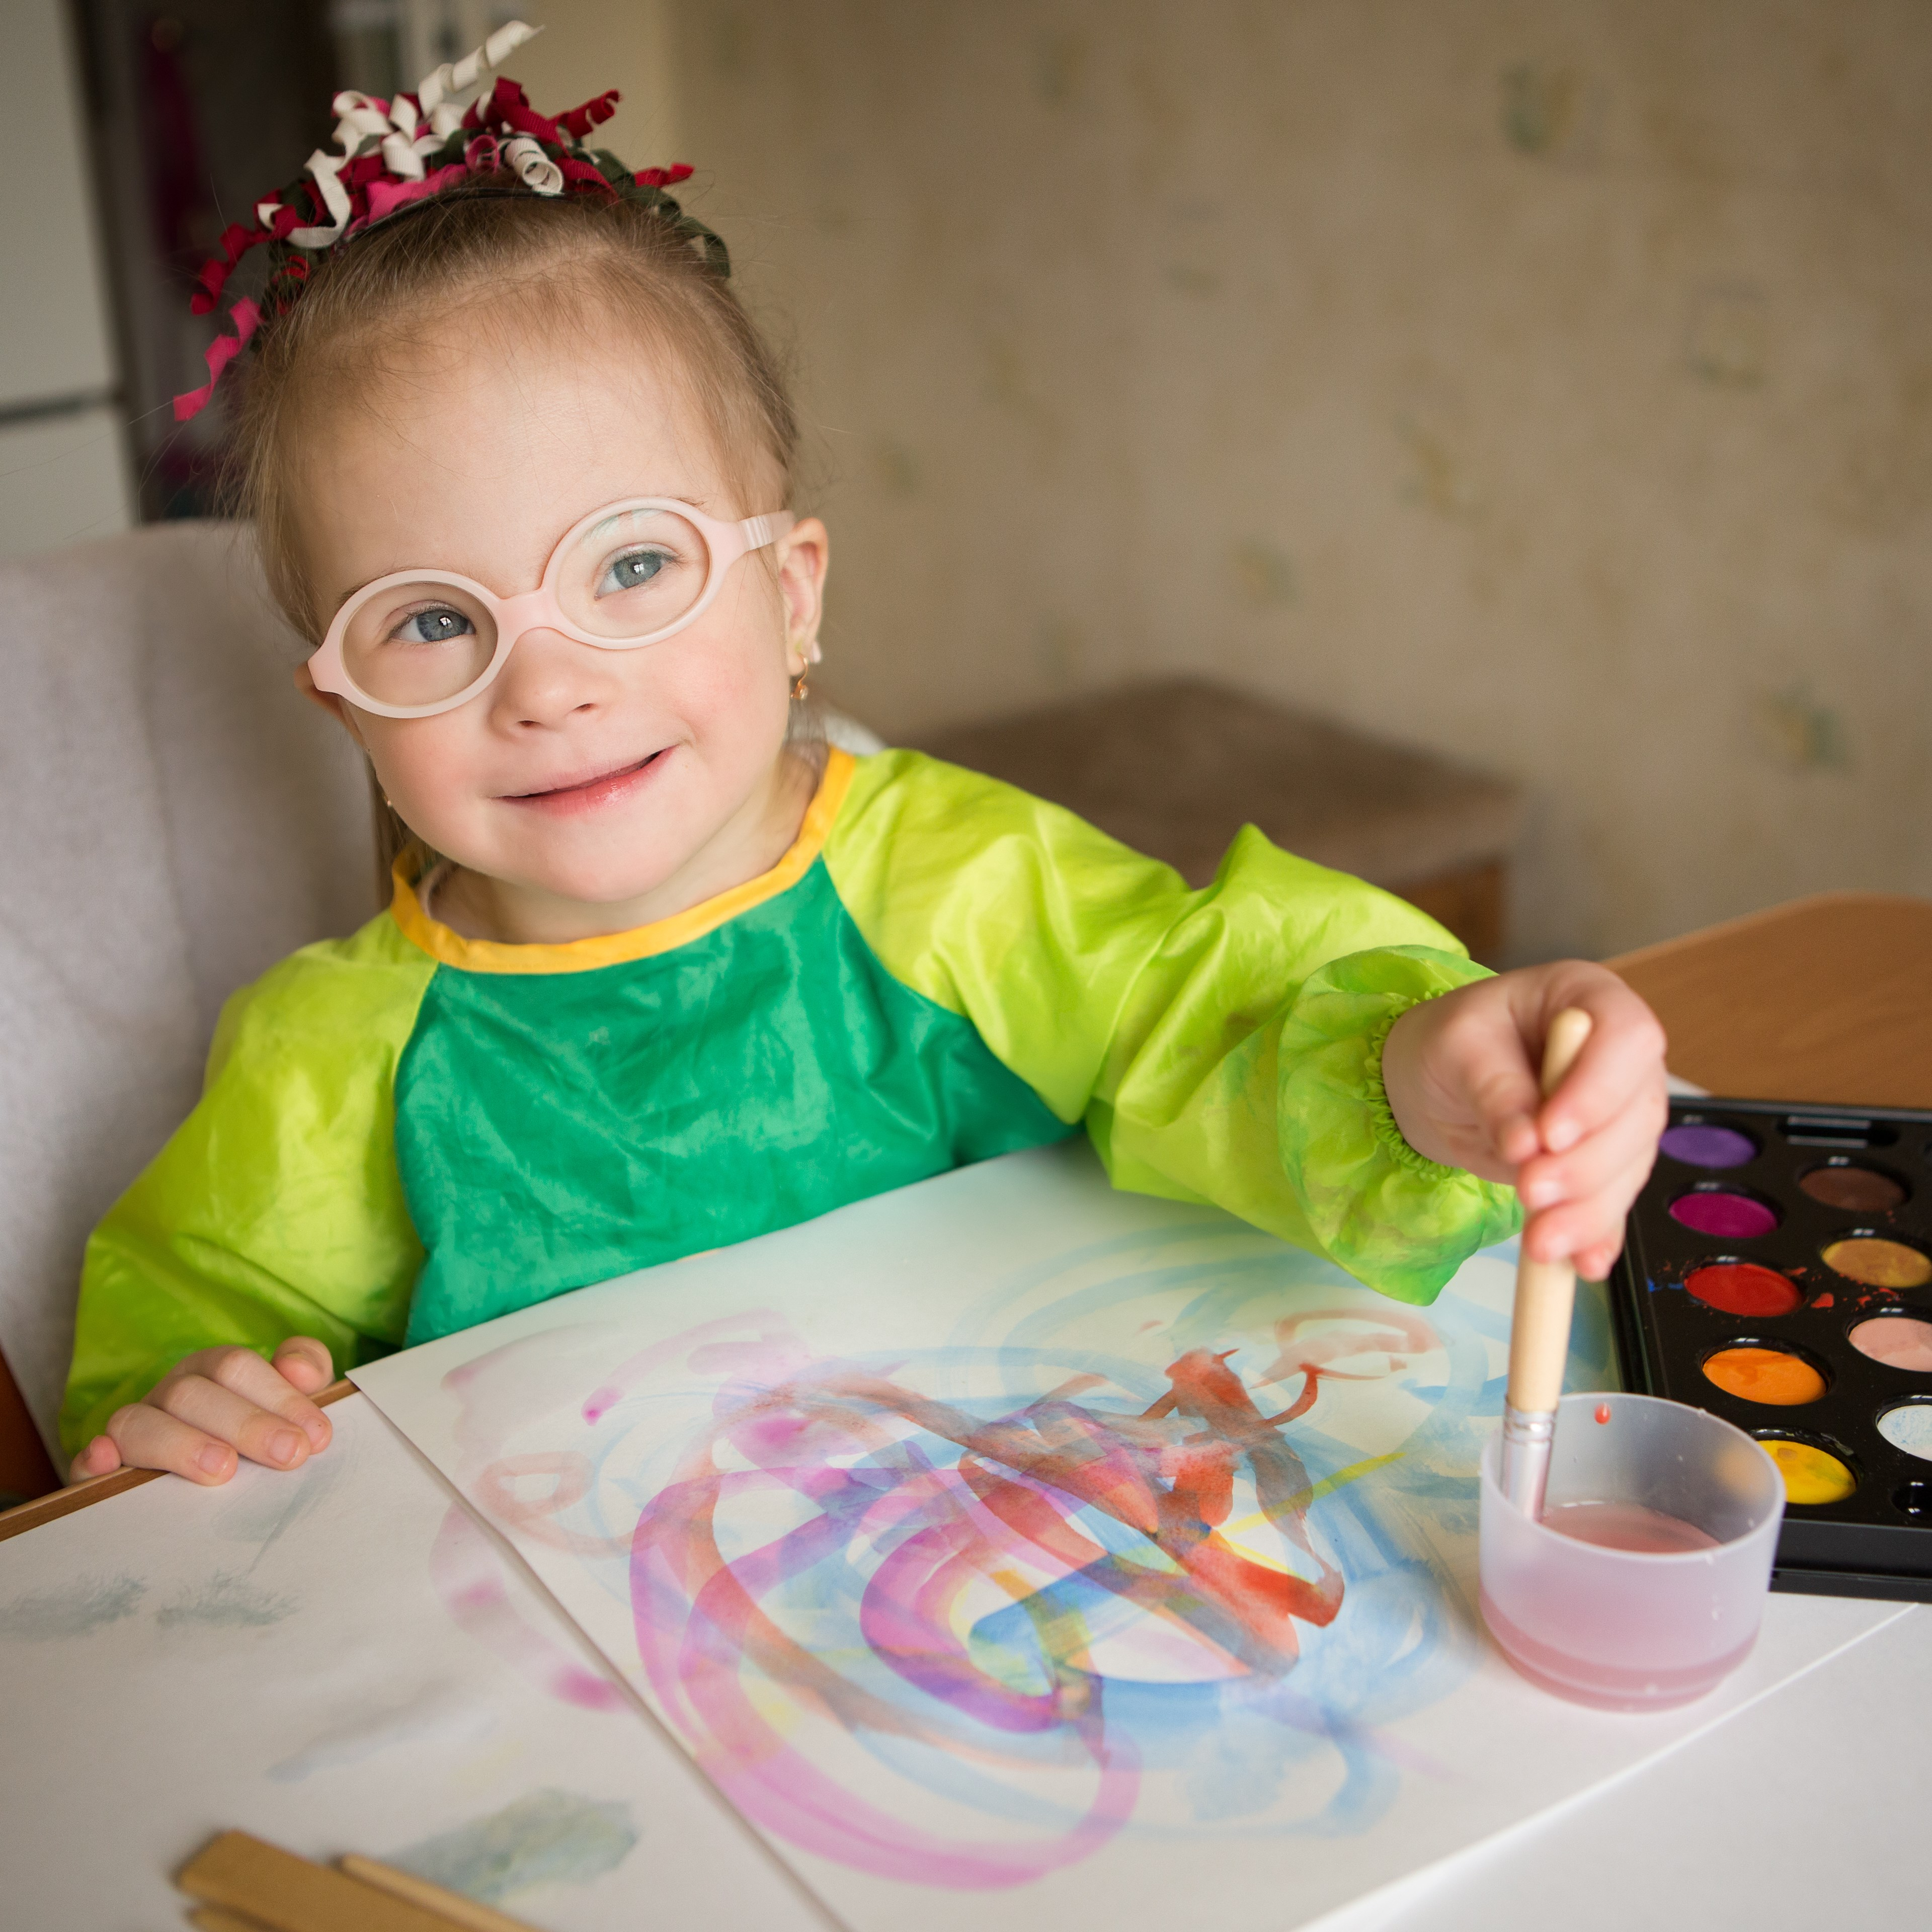 Young girl wearing glasses painting a picture at a table